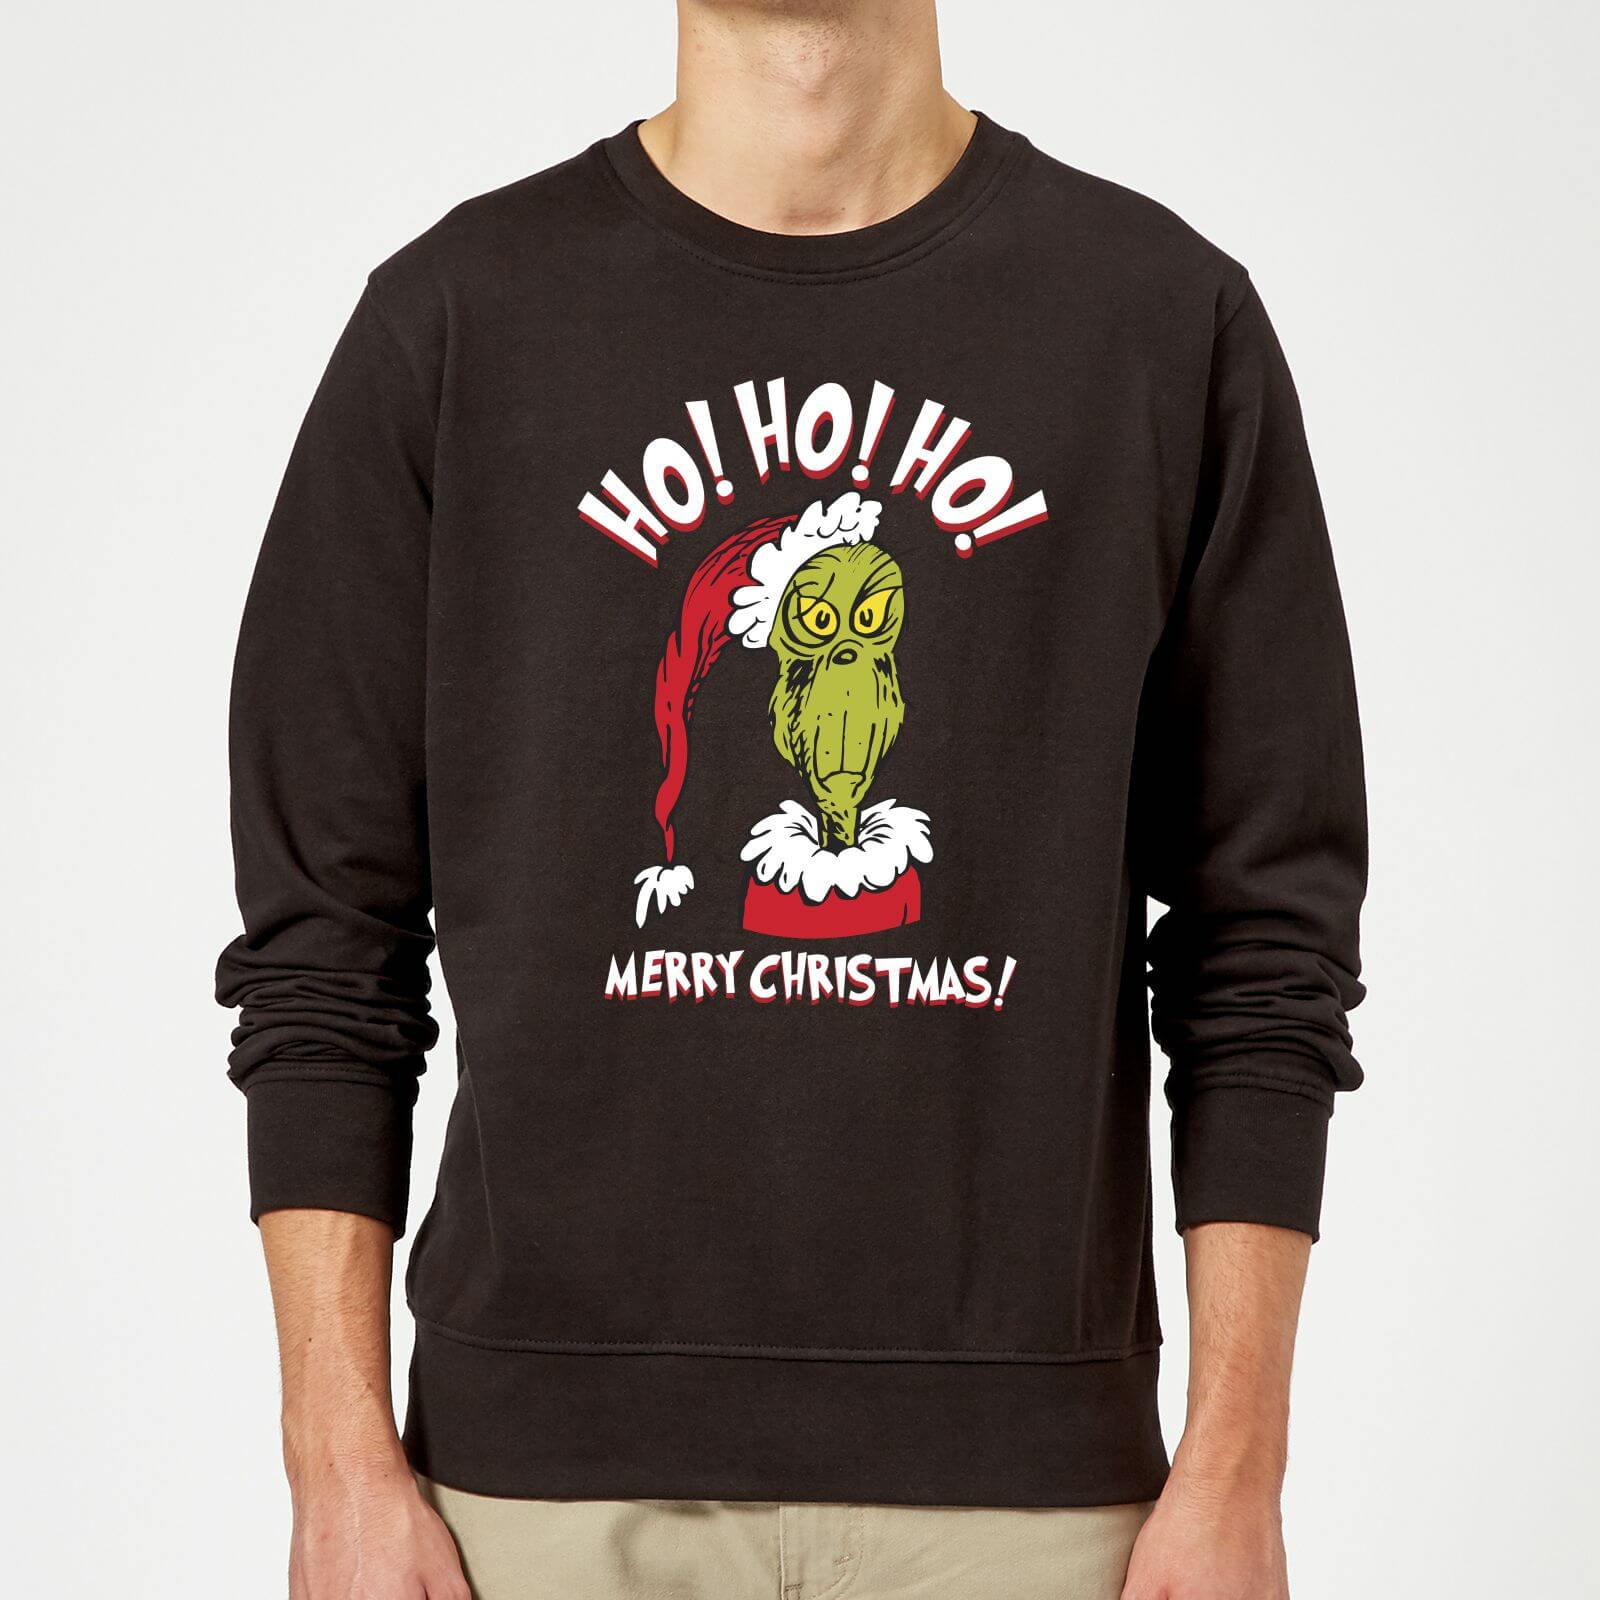 ... Ho Christmas Sweatshirt - Black. Description